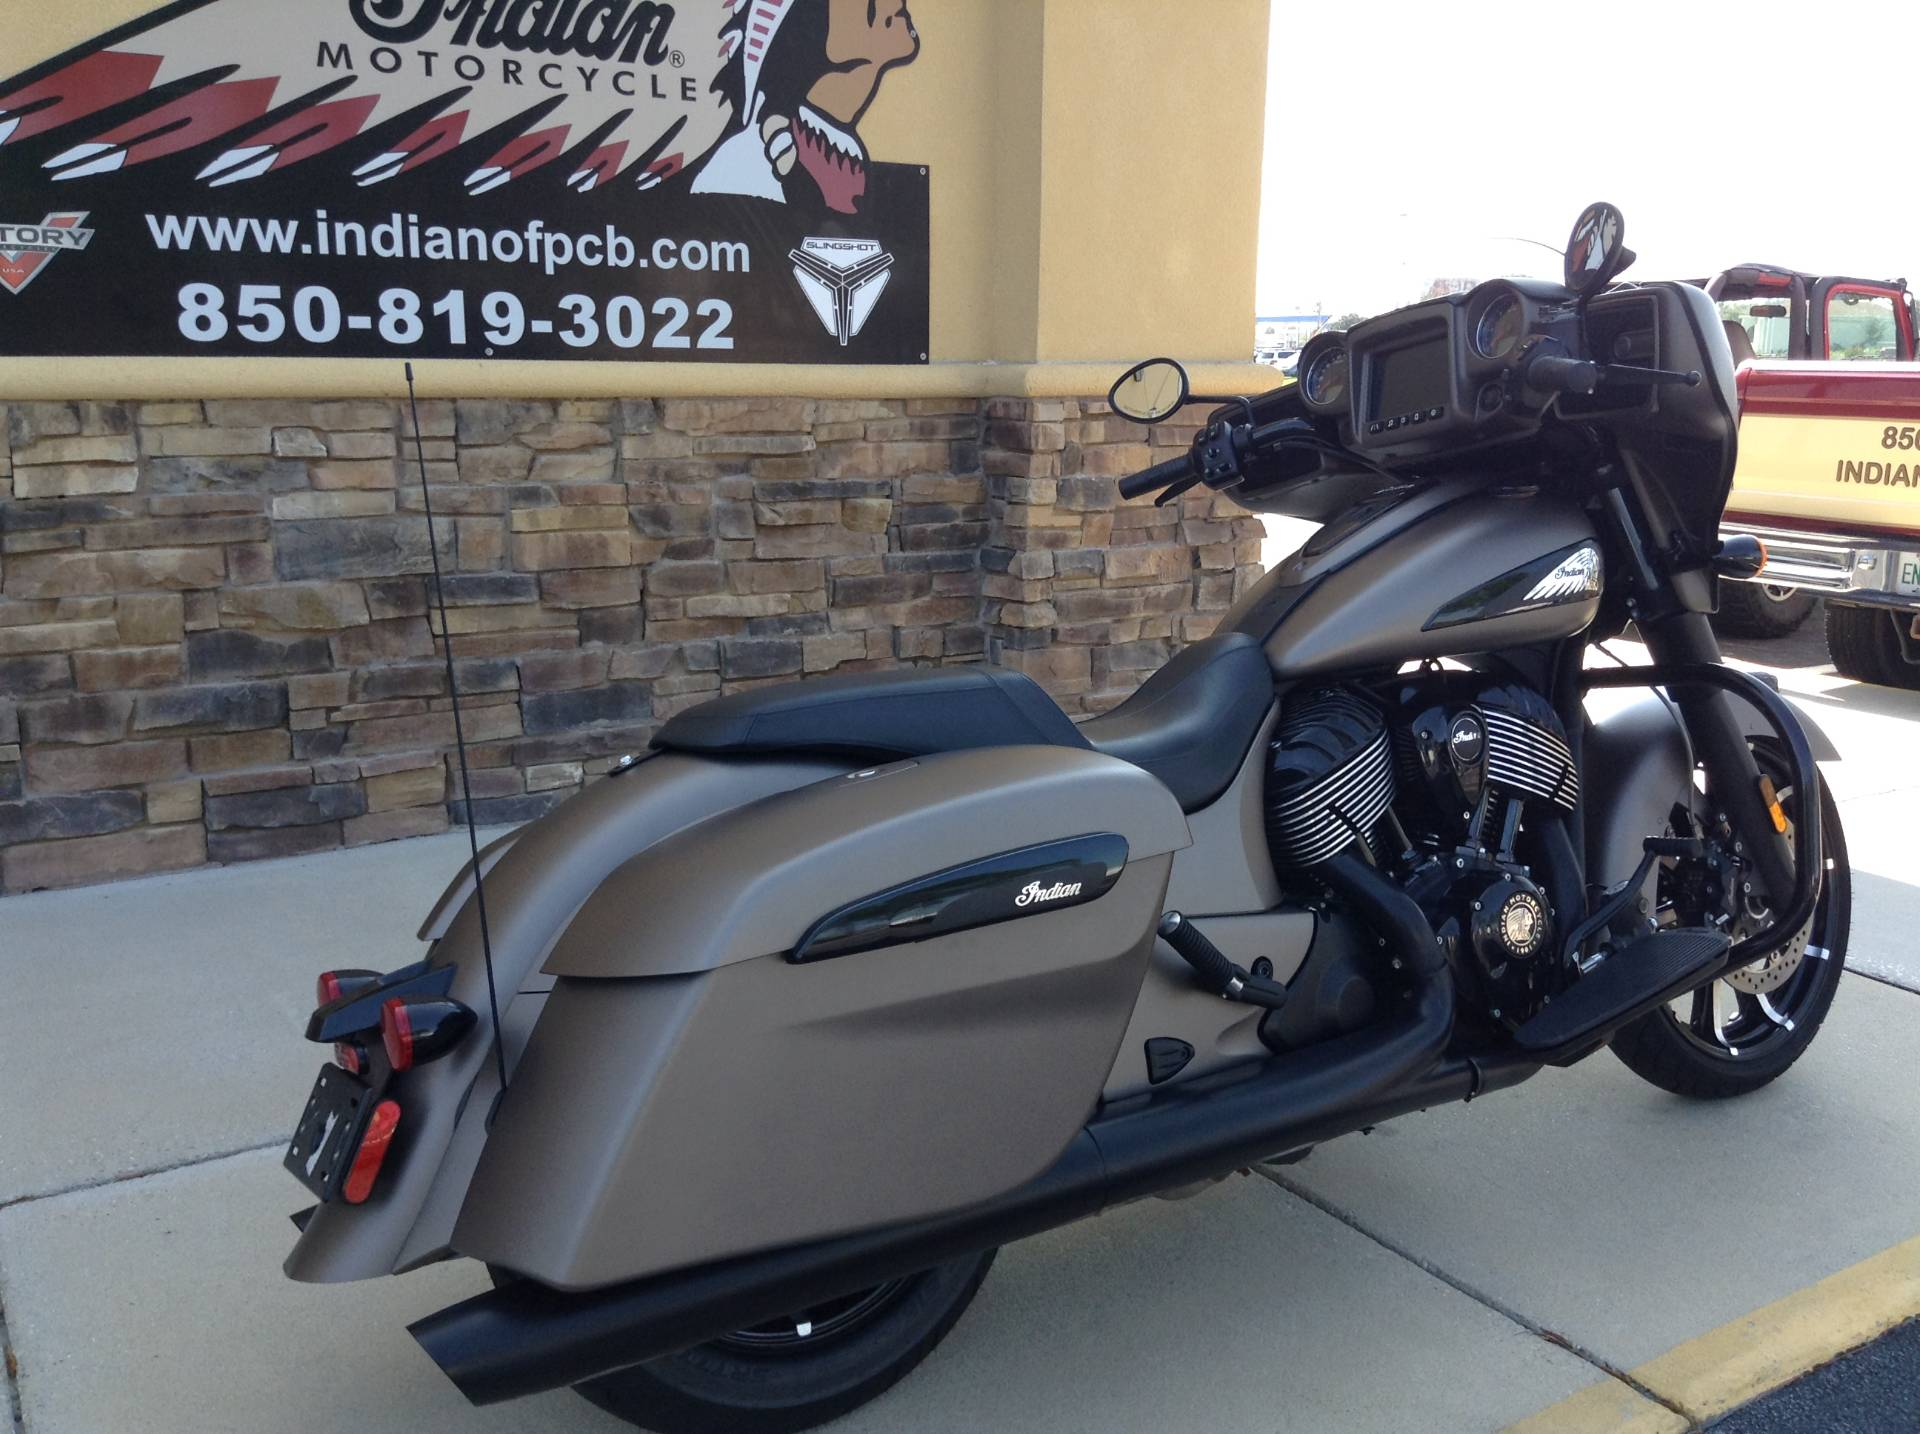 2019 Indian CHIEFTAIN DARKHORSE in Panama City Beach, Florida - Photo 3